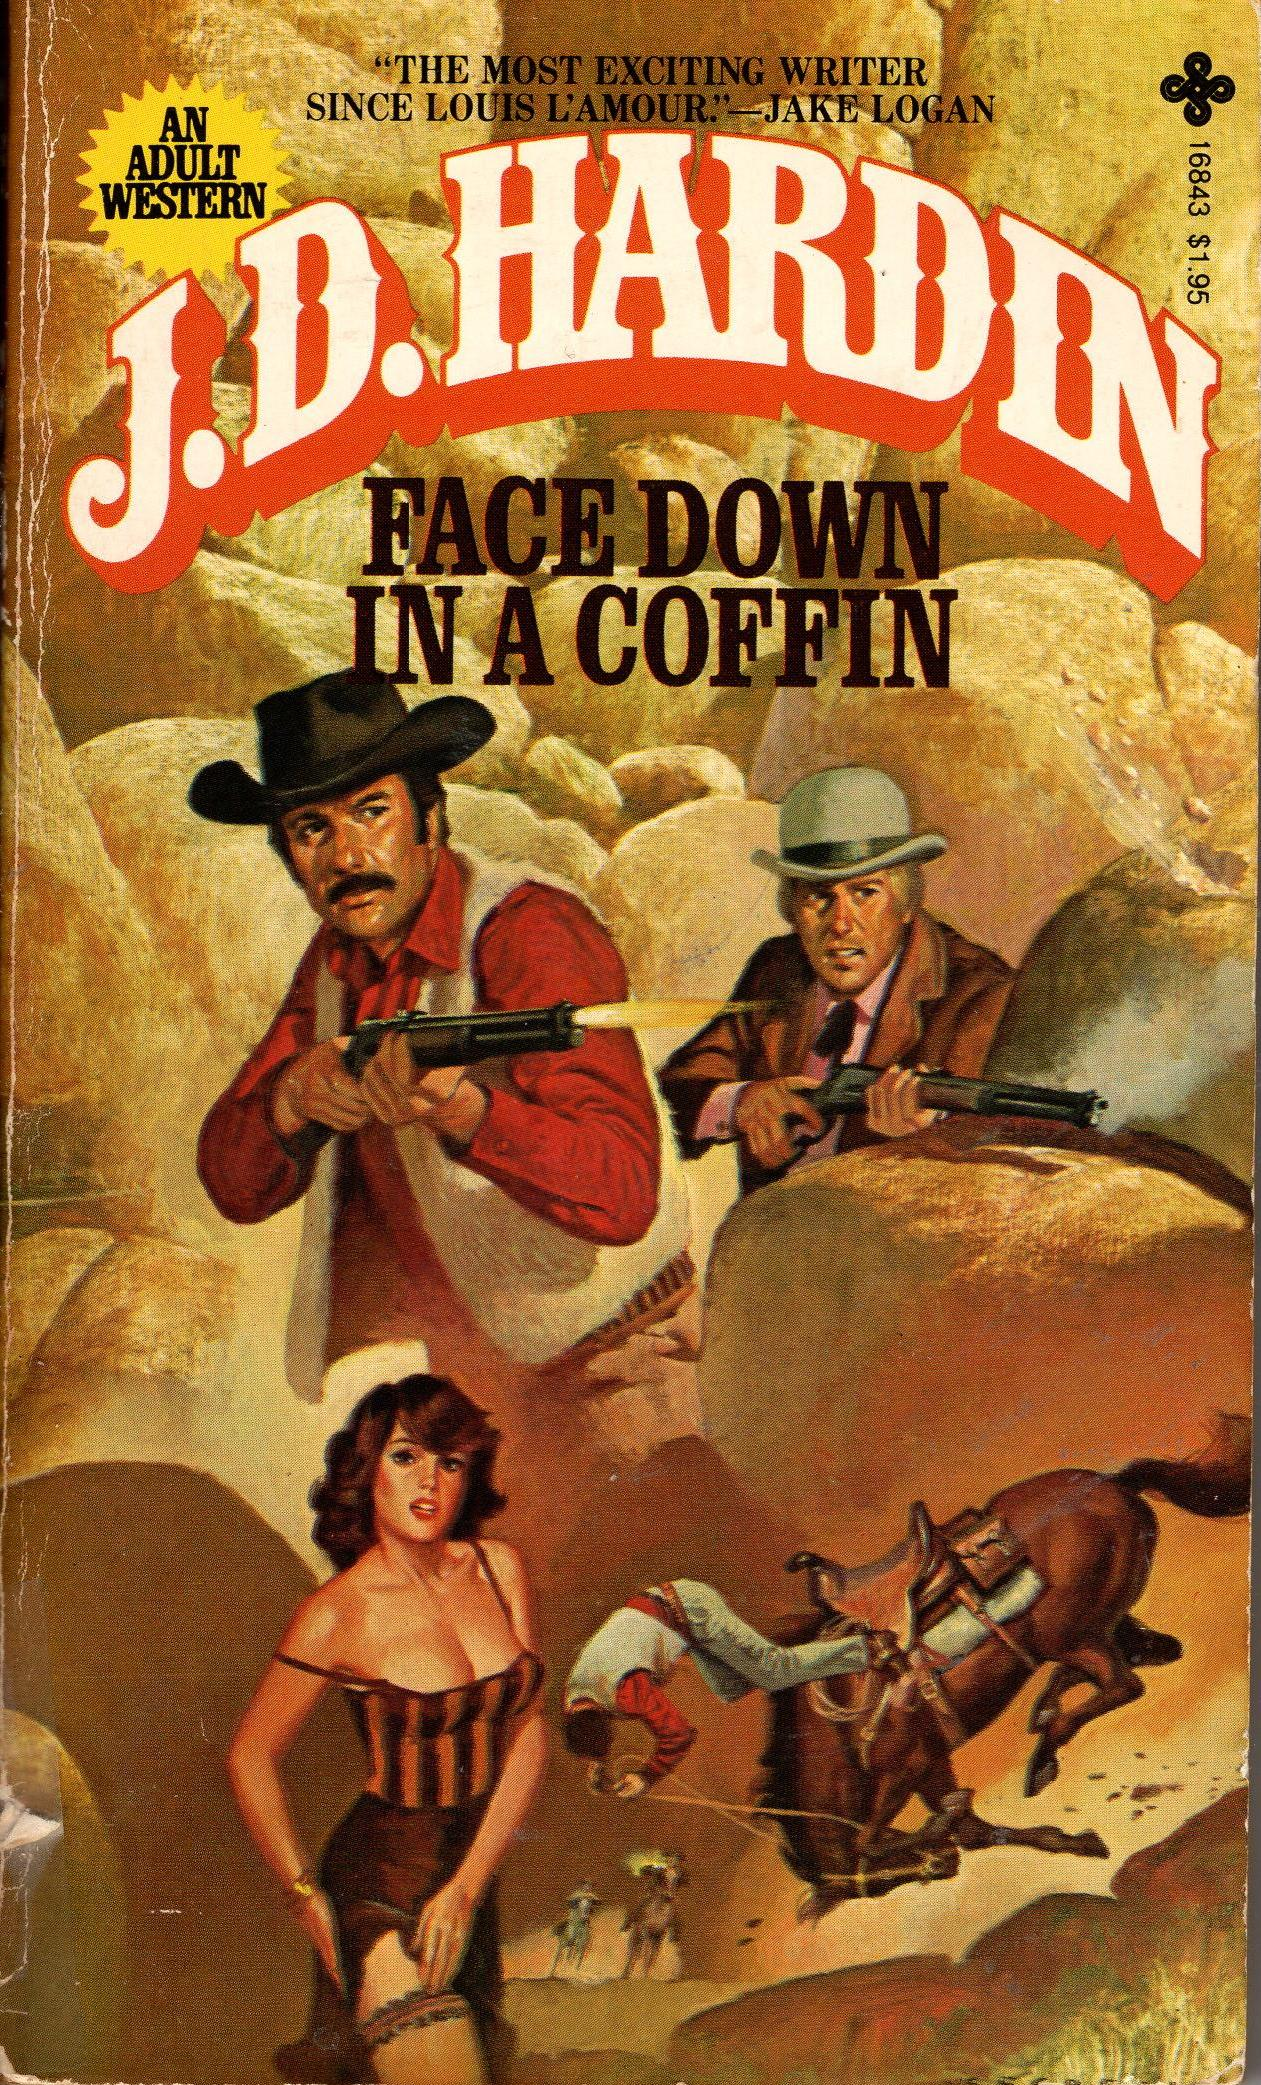 Image for FACE DOWN IN A COFFIN